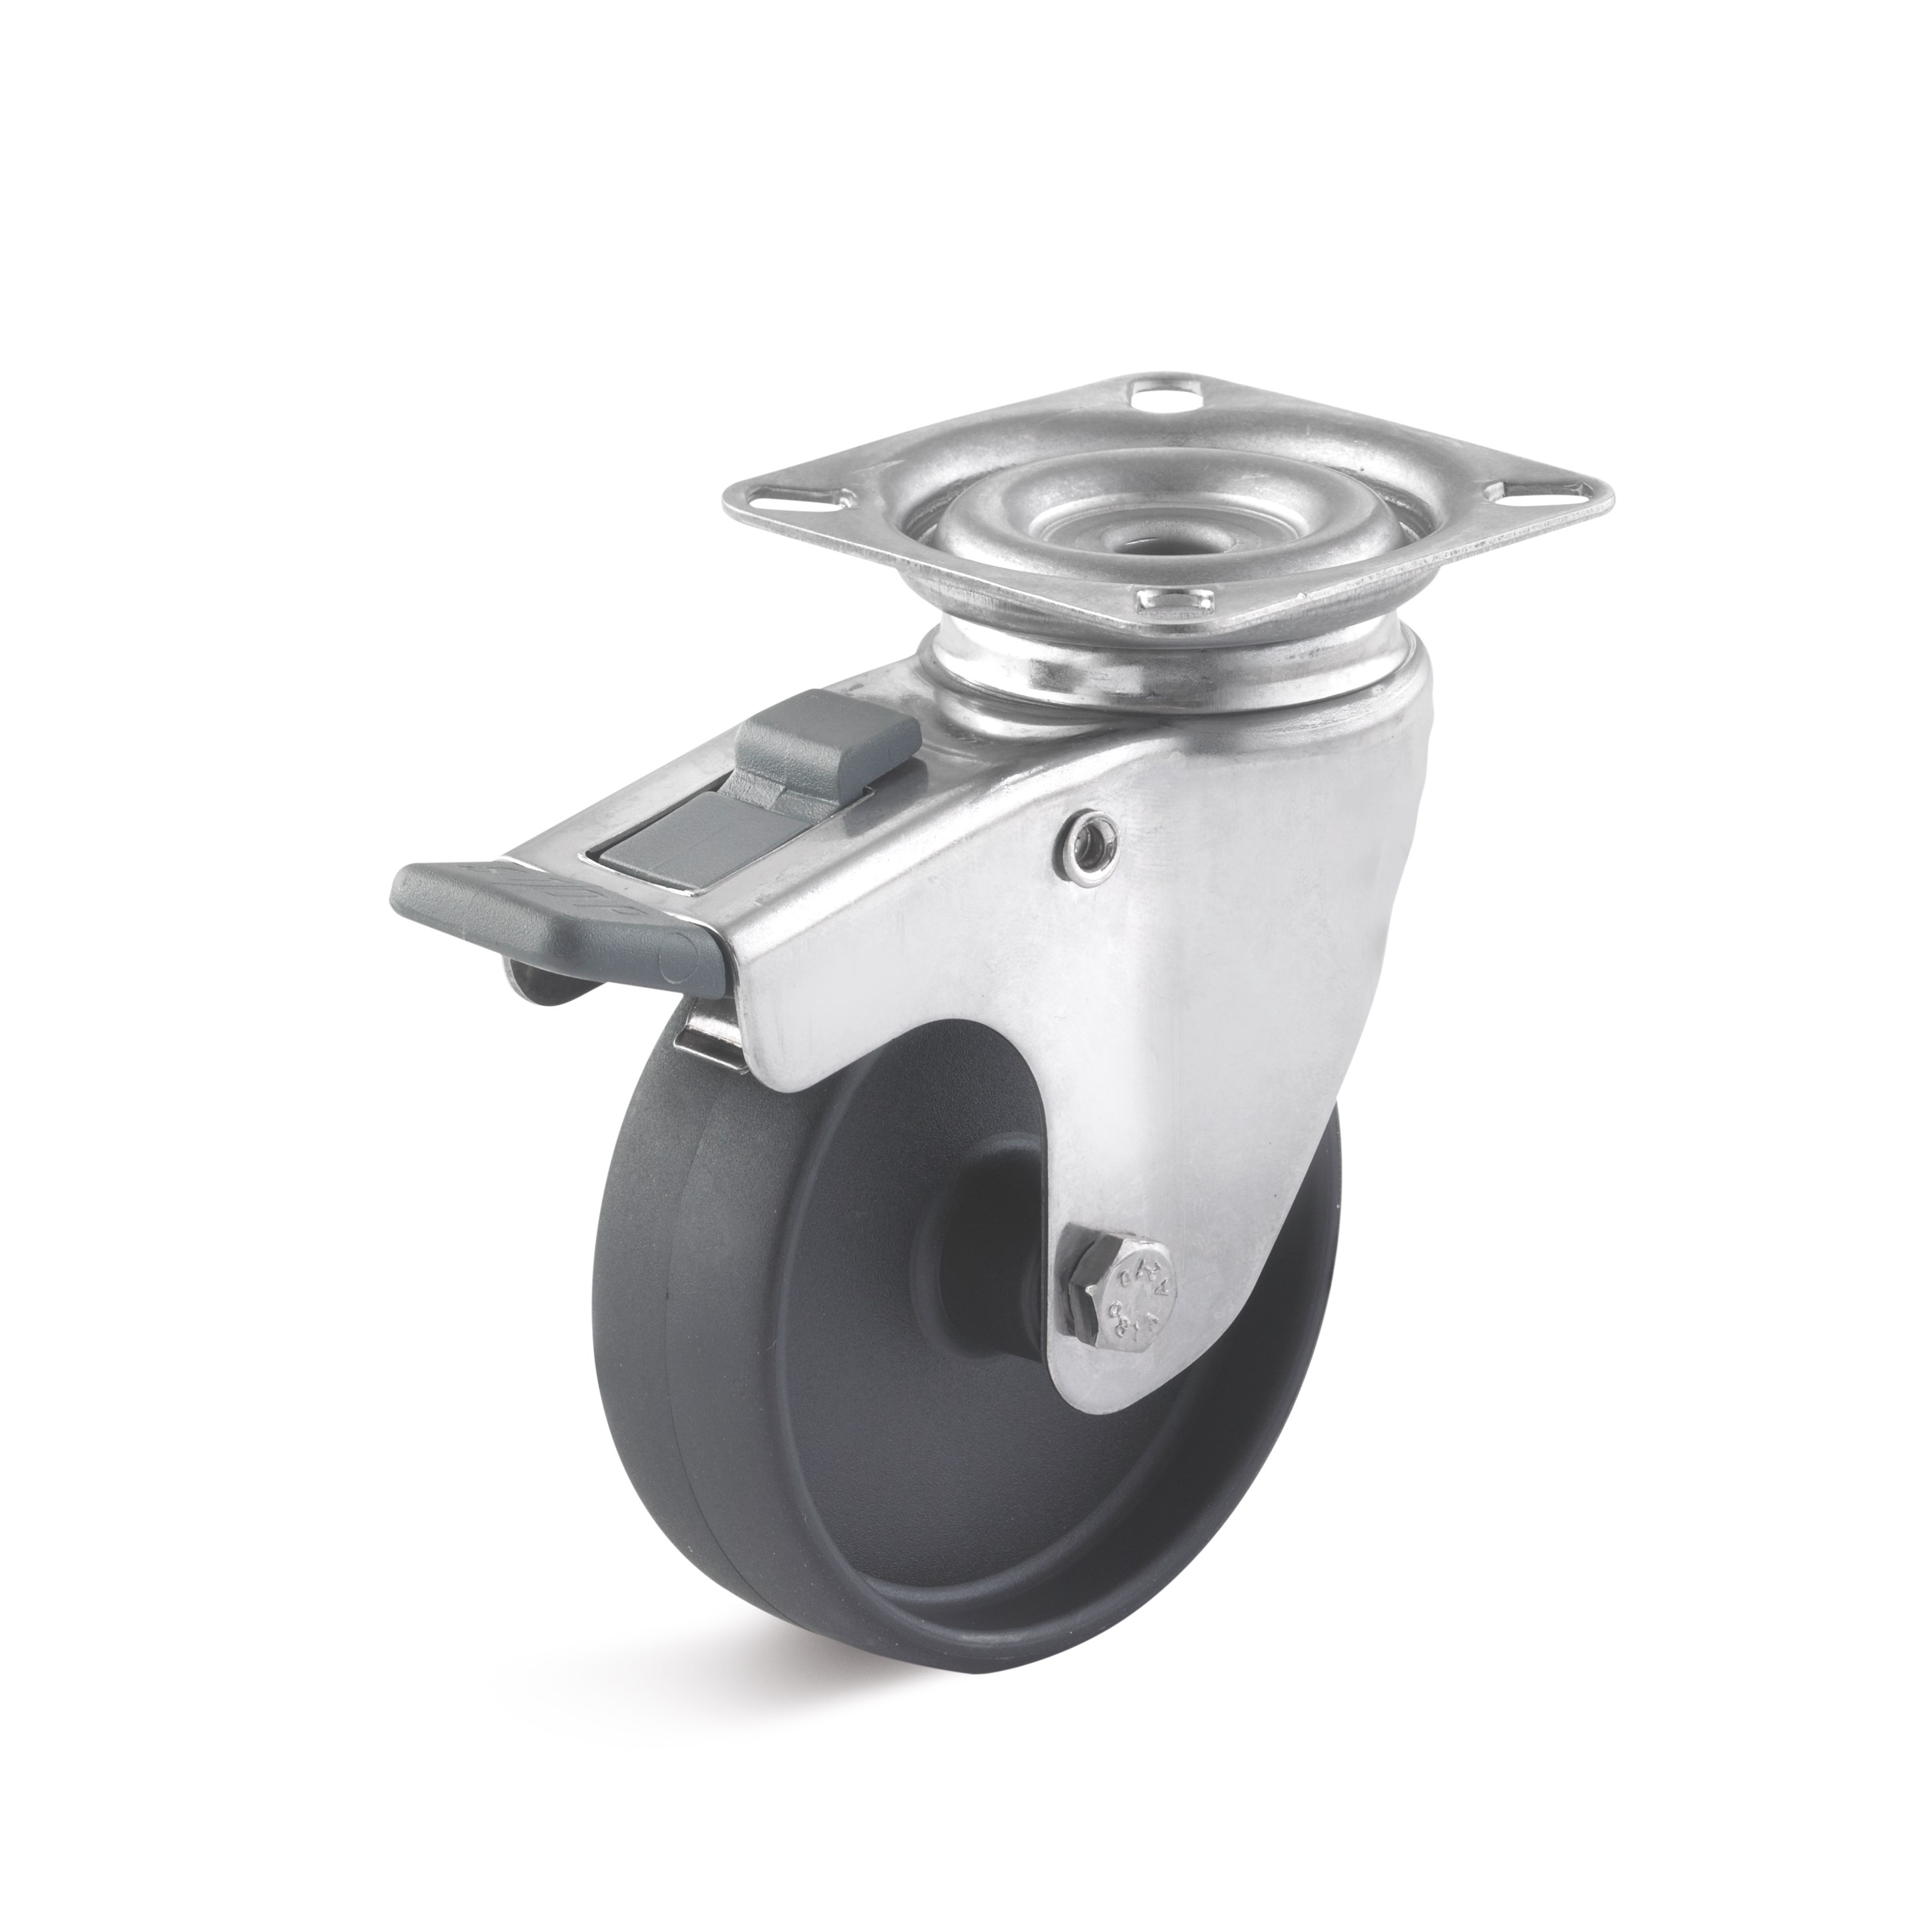 Stainless steel swivel castor with plate attachment and double stop, polyamide wheel